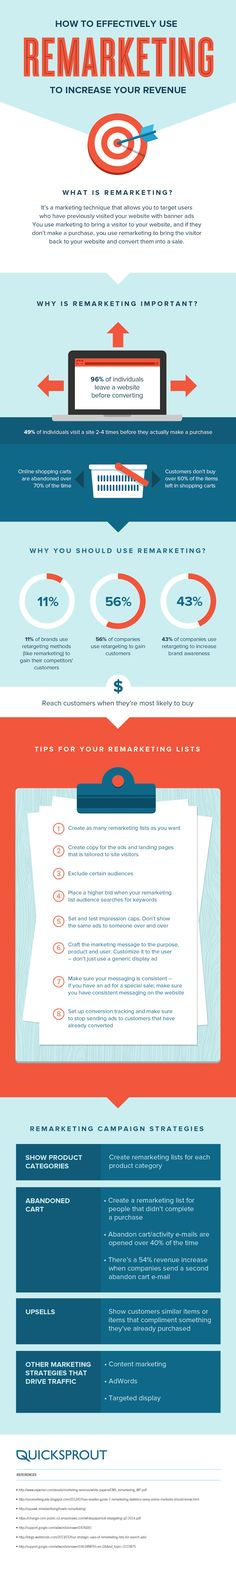 How to Effectively Use Remarketing to Increase Your Revenue